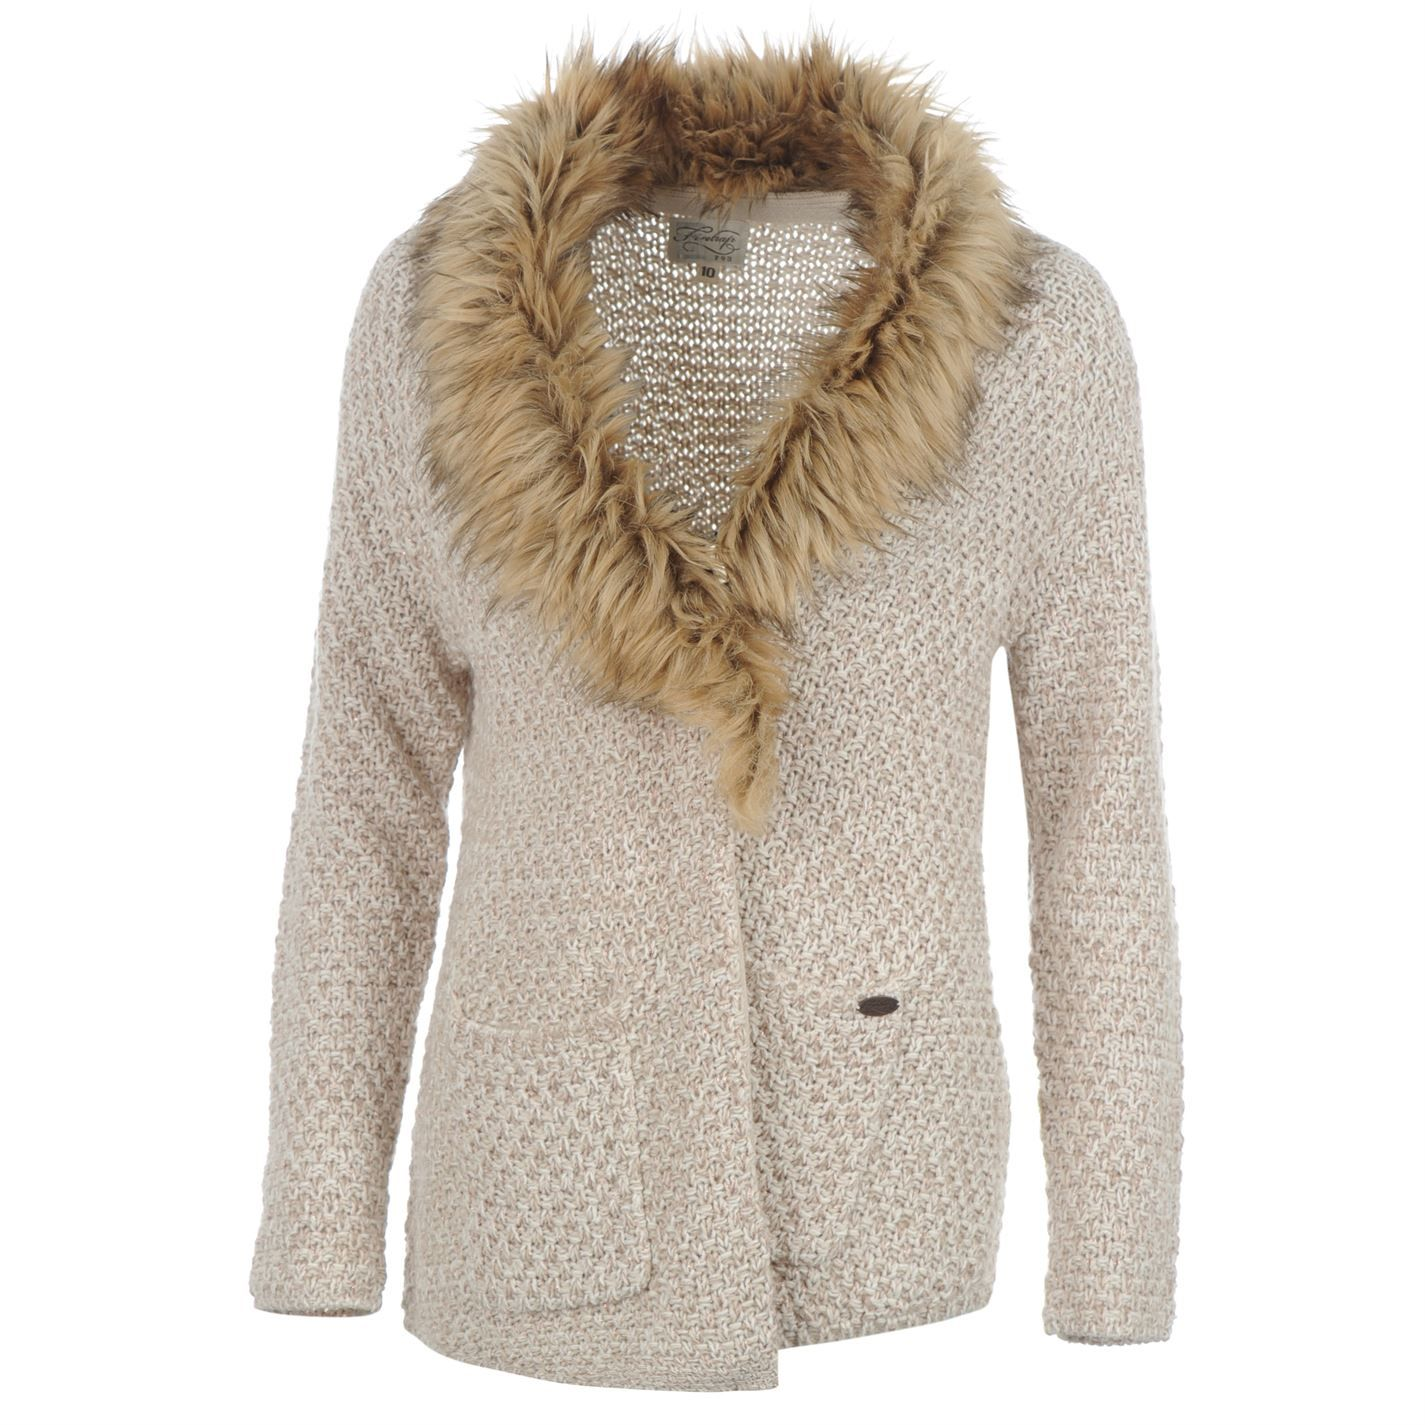 Firetrap | Firetrap Fur Collar Knitted Cardigan Ladies | Ladies ...